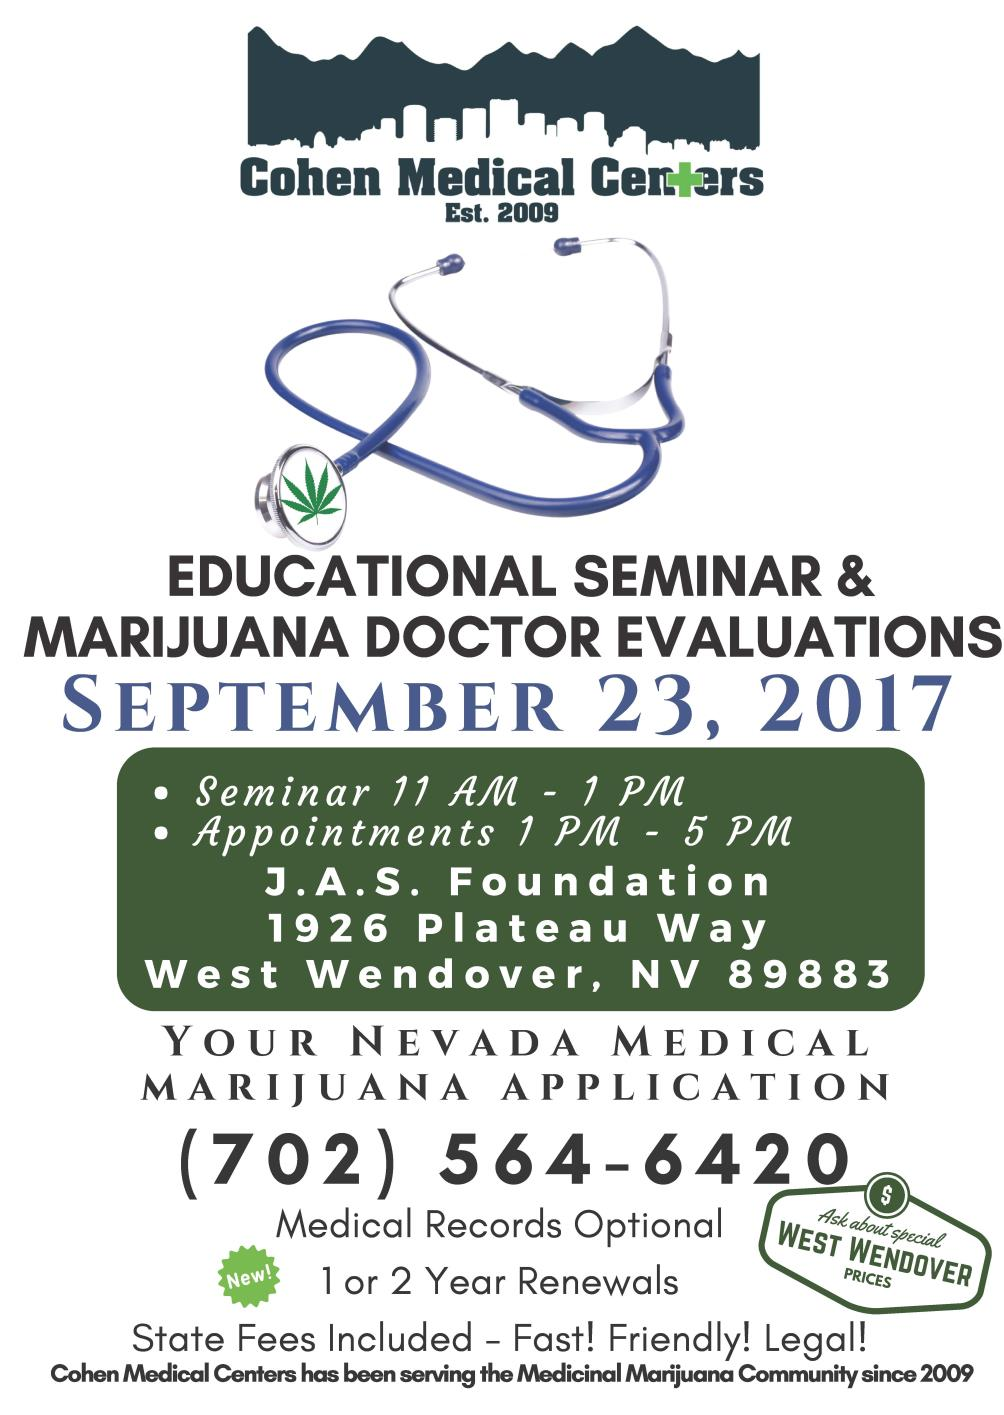 JAS Foundation Hosts Medical Marijuana Educational Seminar